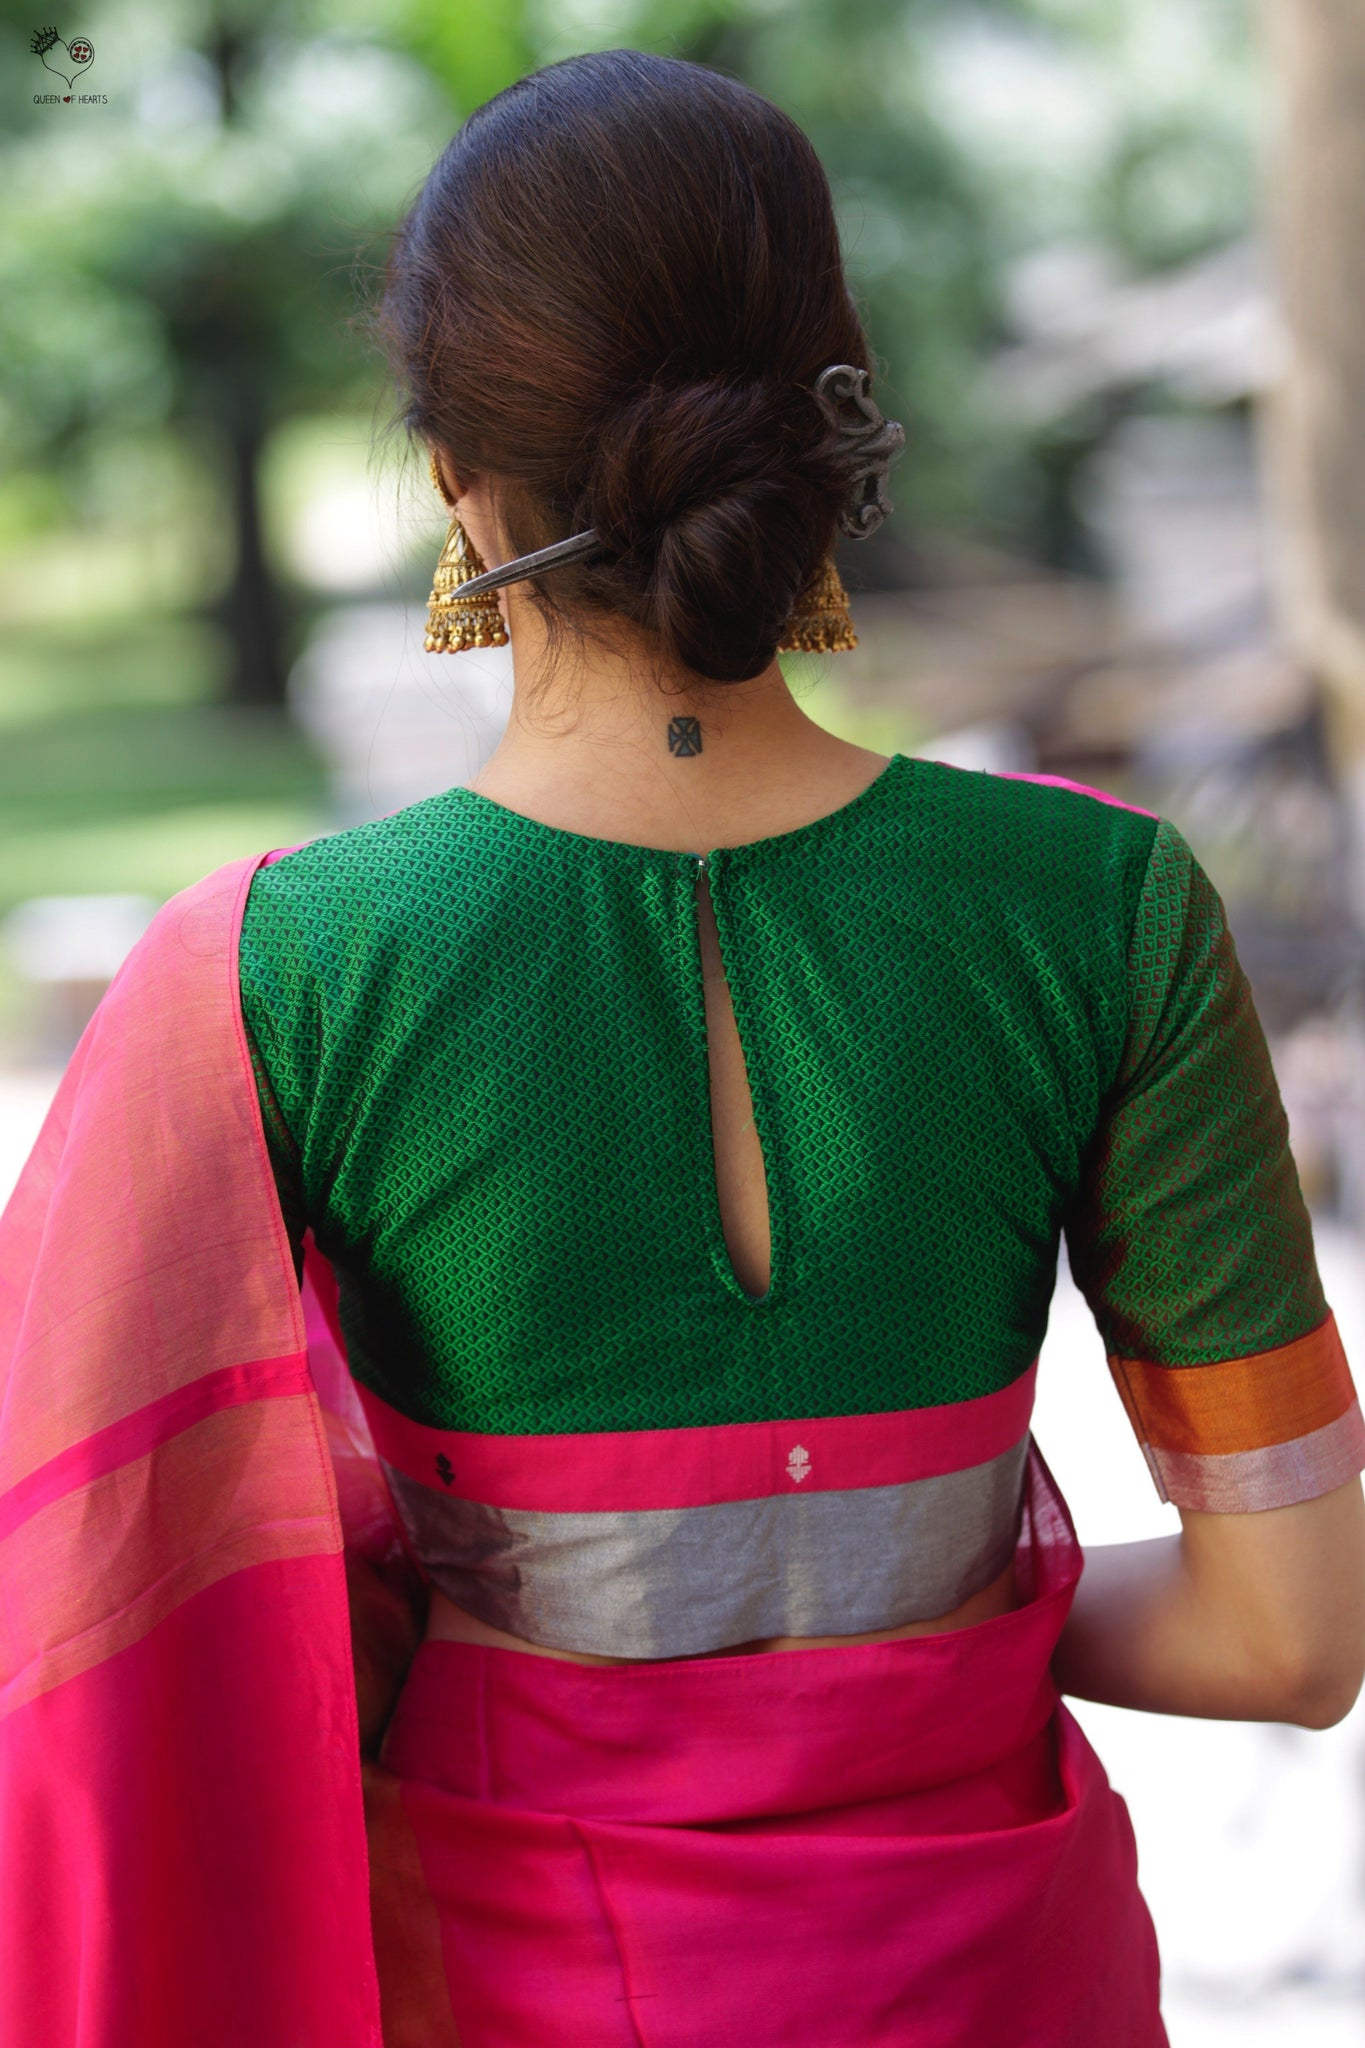 Shades of Pink and Green Katori Blouse